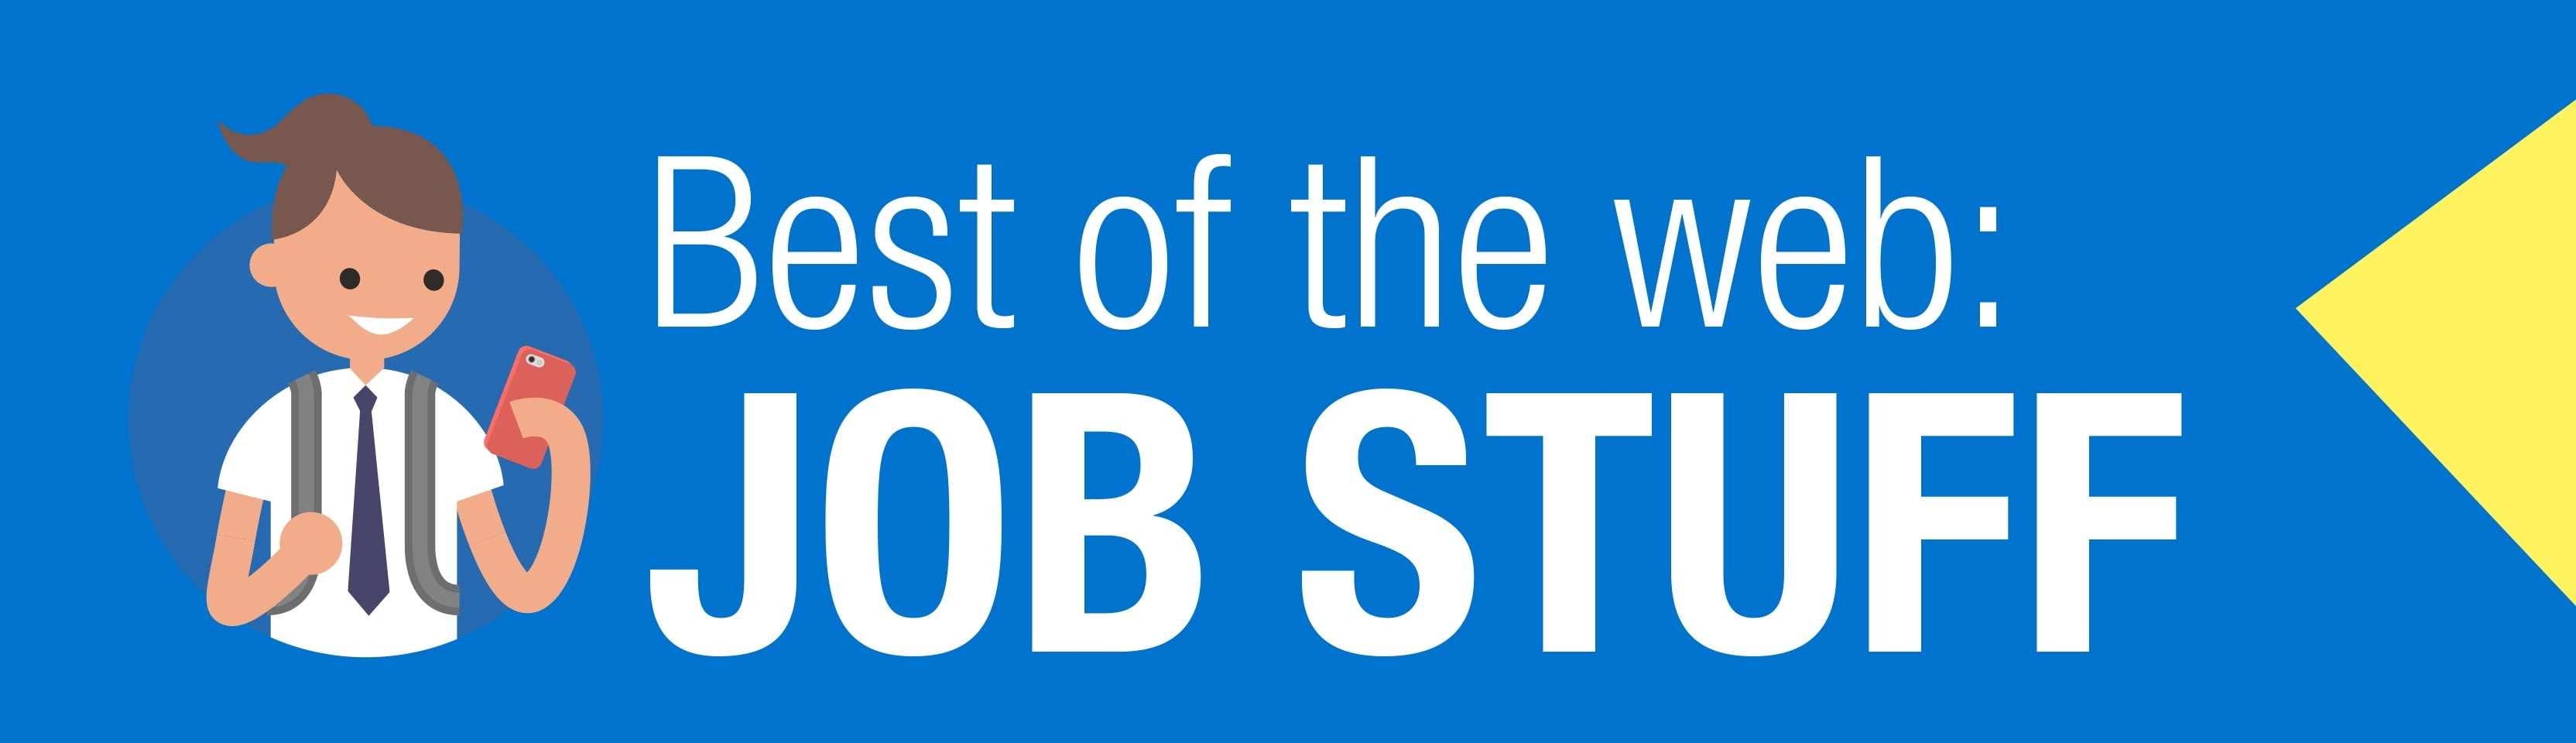 Job Stuff Best of the Web BANNER